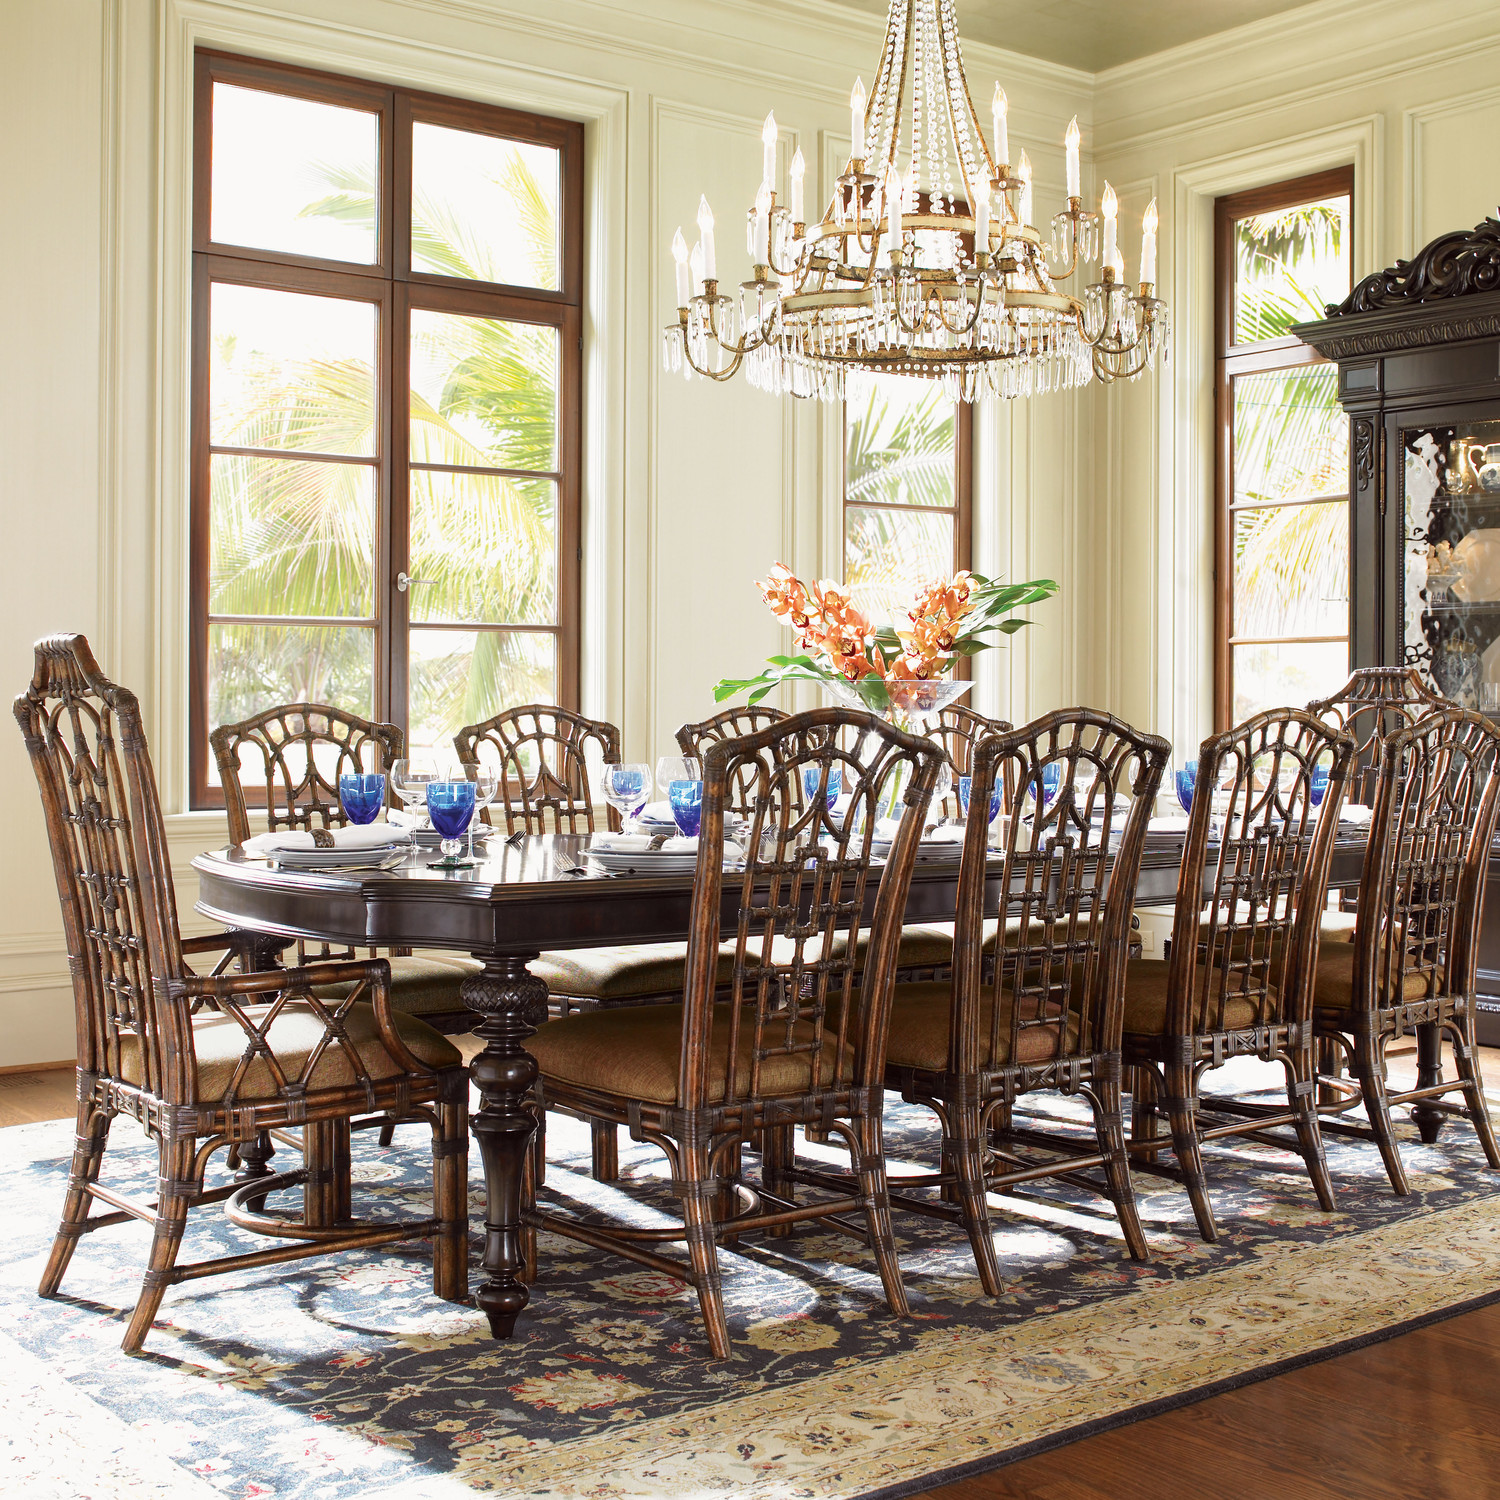 Rooms To Go Dining Sets: 11 Piece Dining Room Set